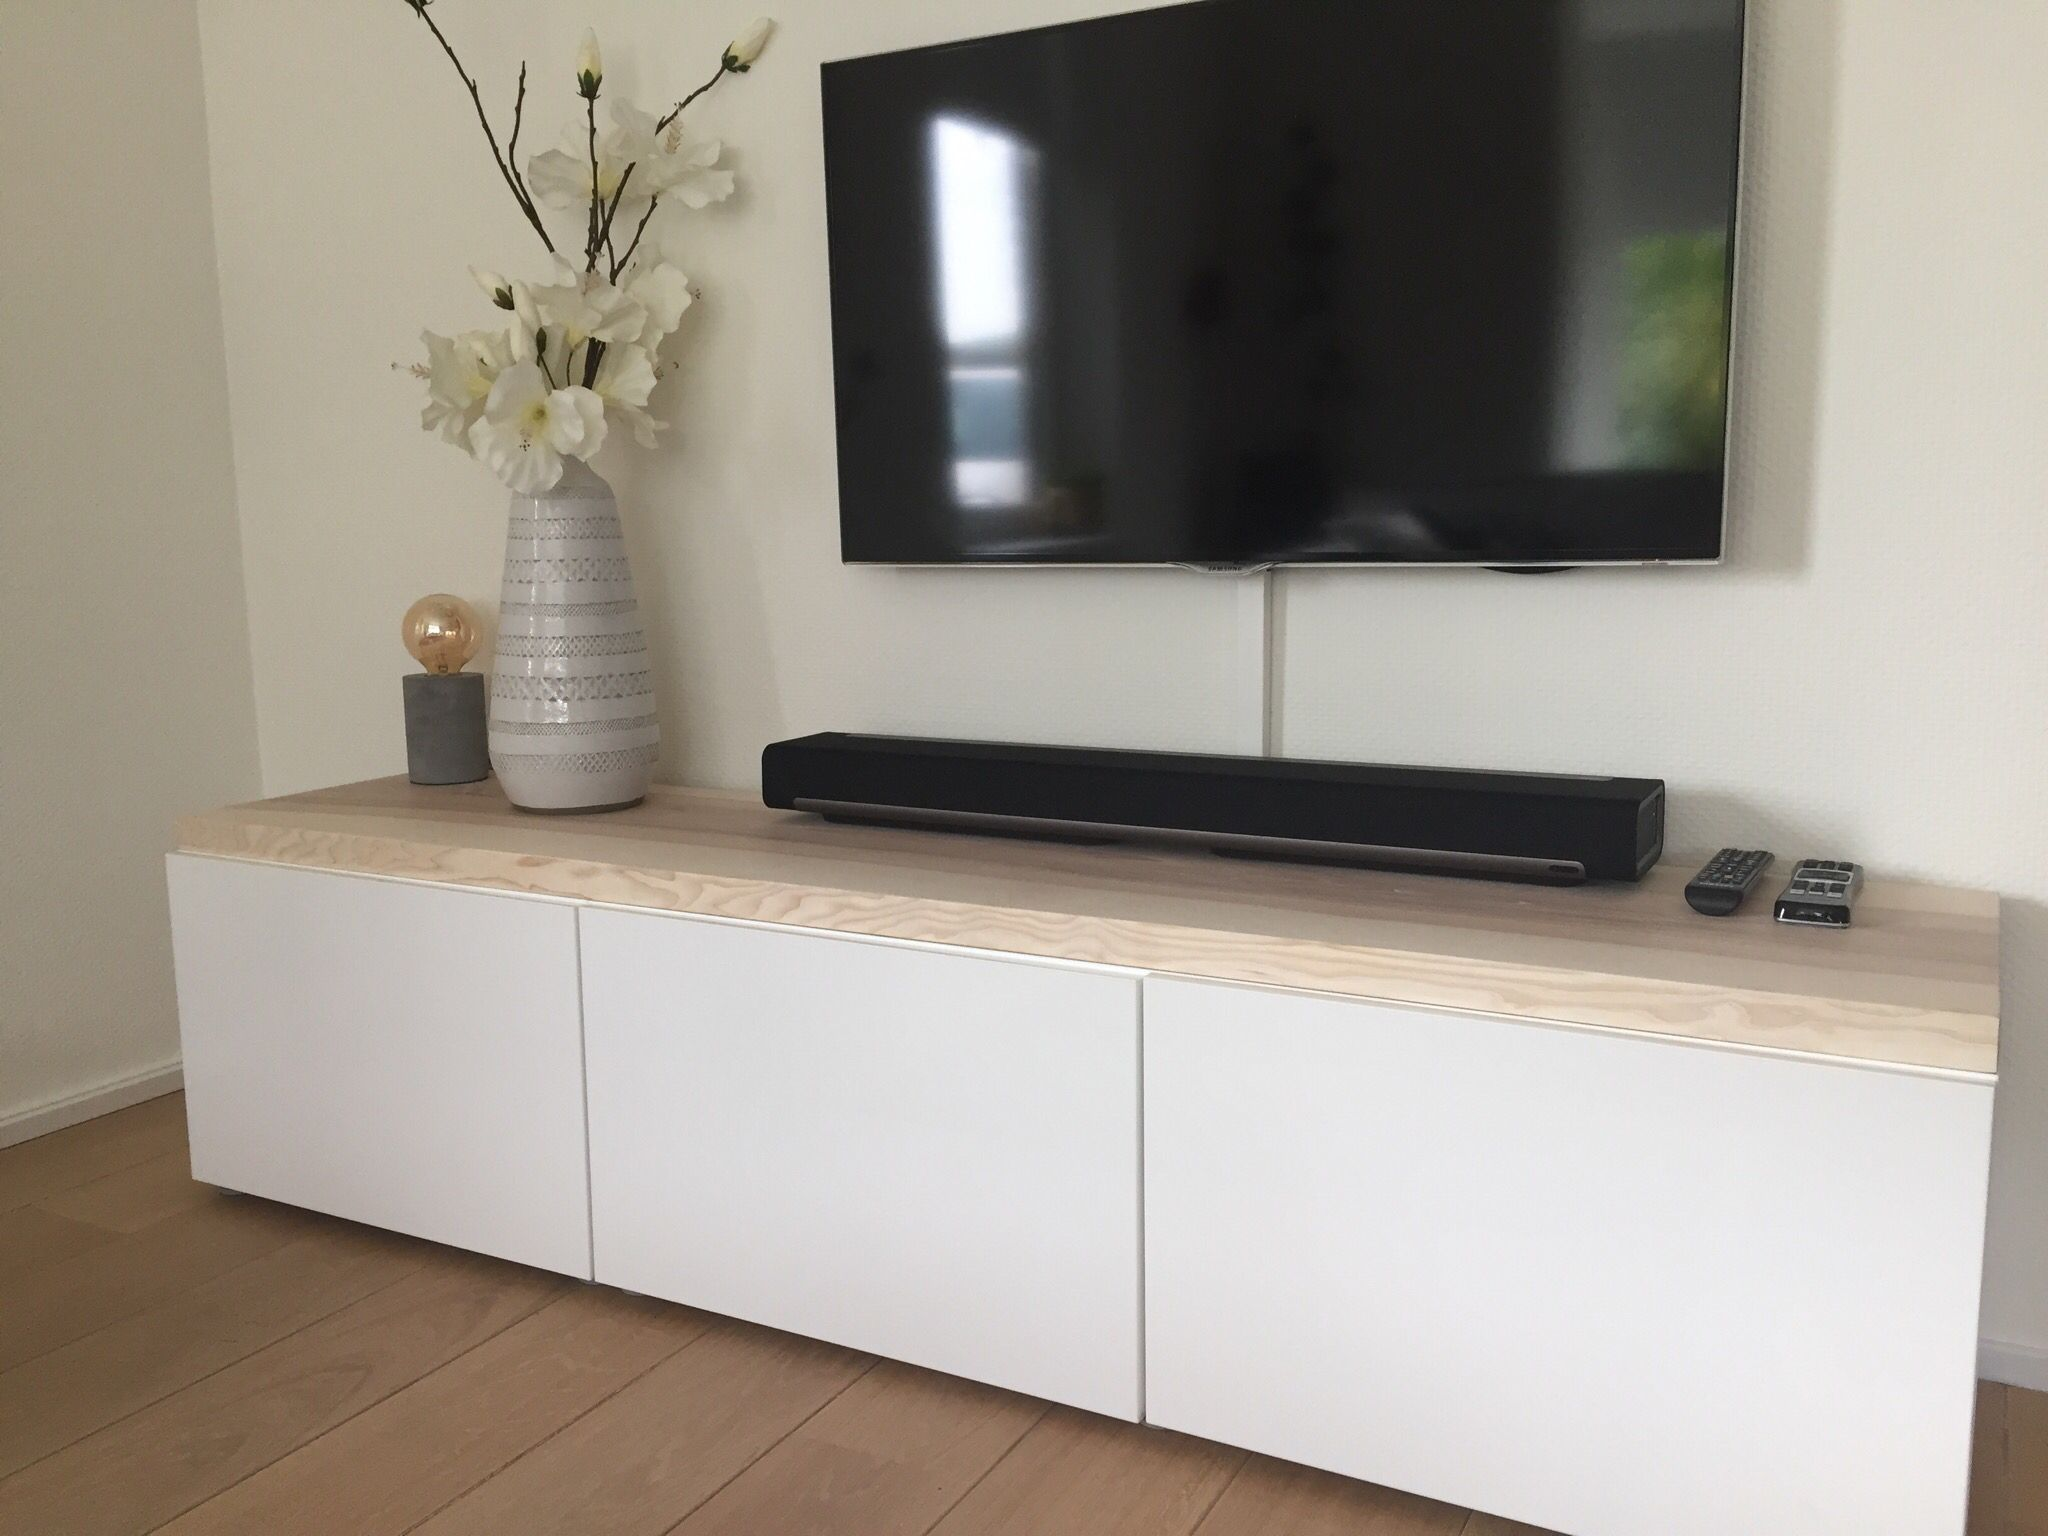 besta ikea hack moderne strakke tv meubel huisdecoratie pinterest ikea hacks hacks en ikea. Black Bedroom Furniture Sets. Home Design Ideas